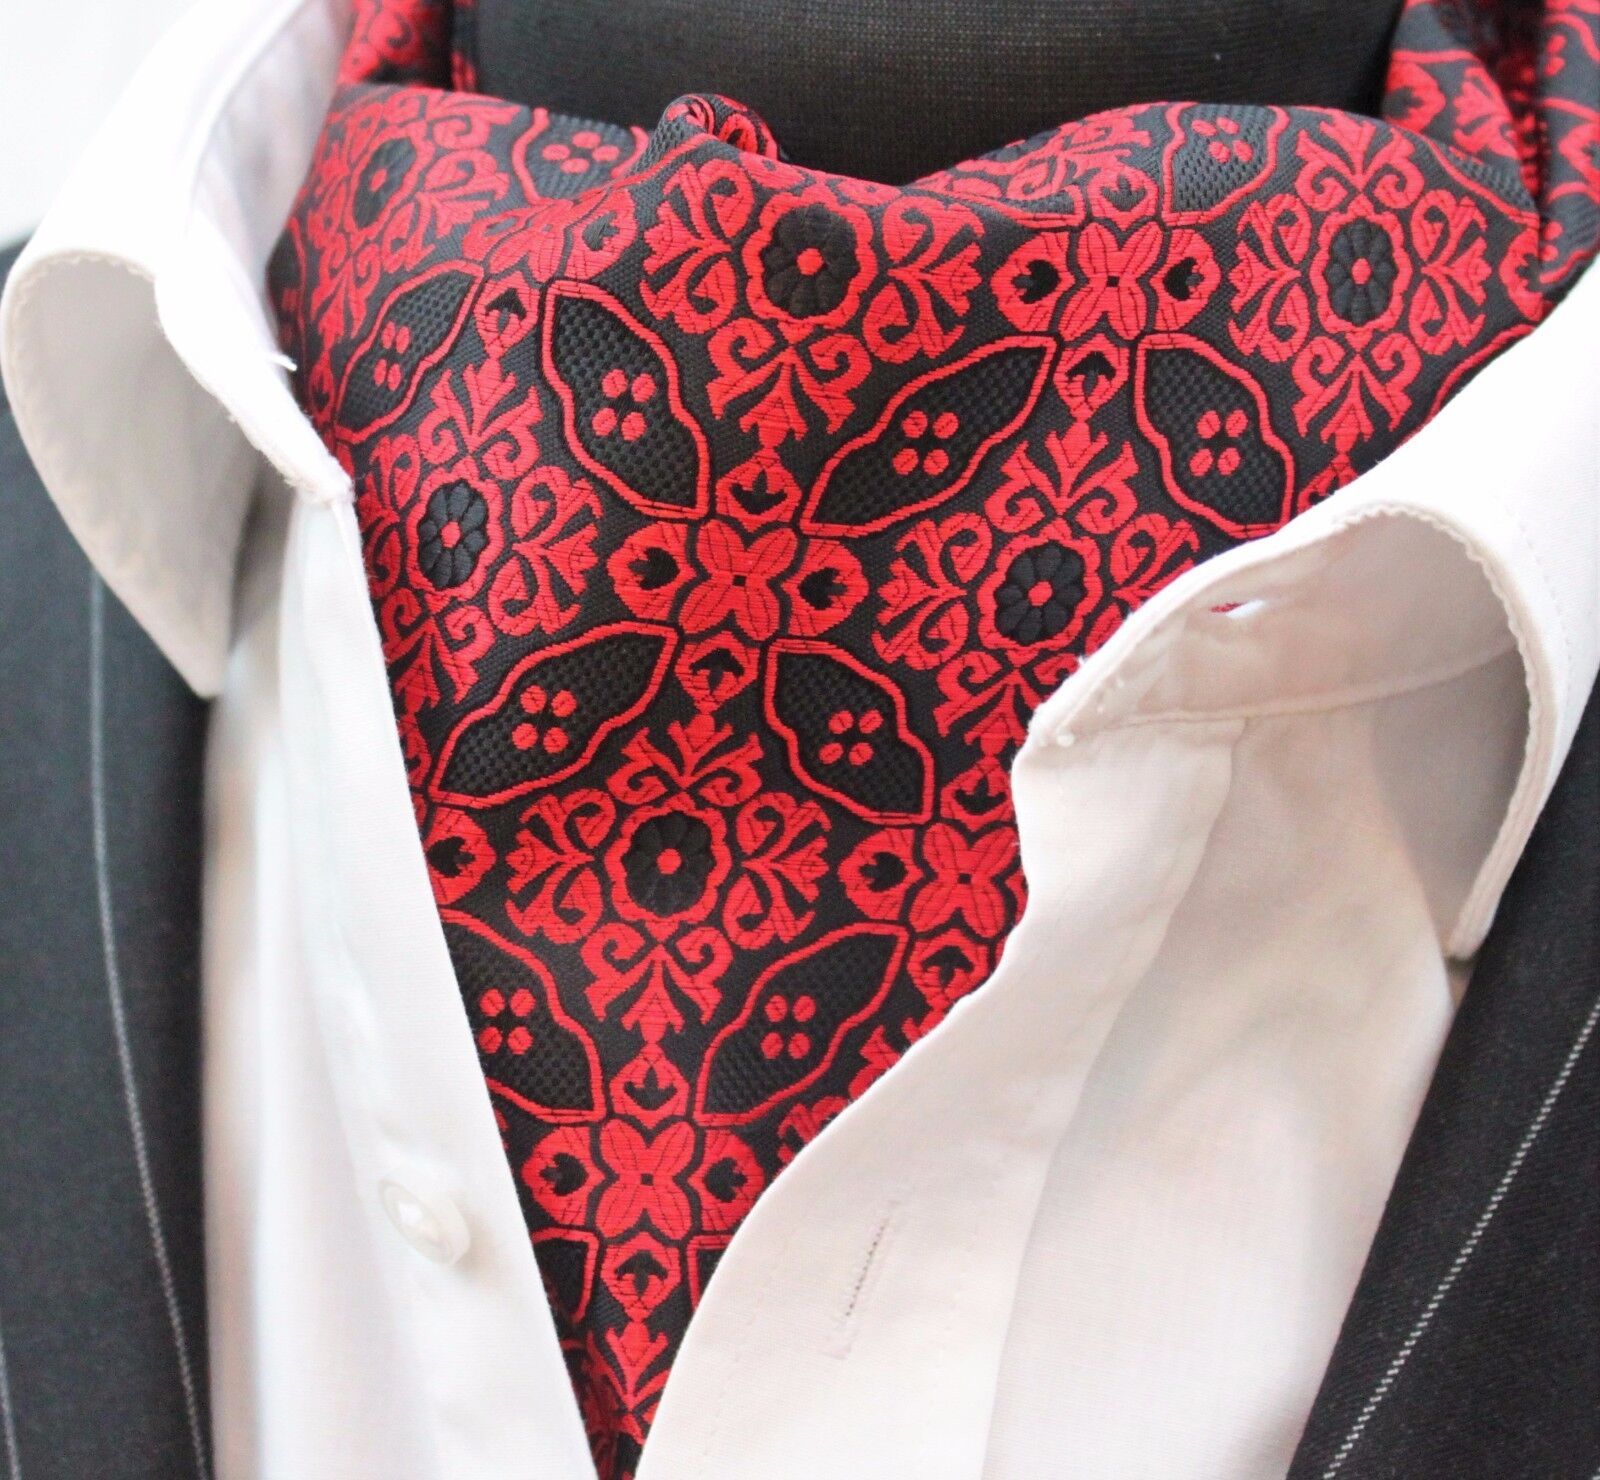 Cravat Ascot Red & Black Patterned Cravat with matching hanky.